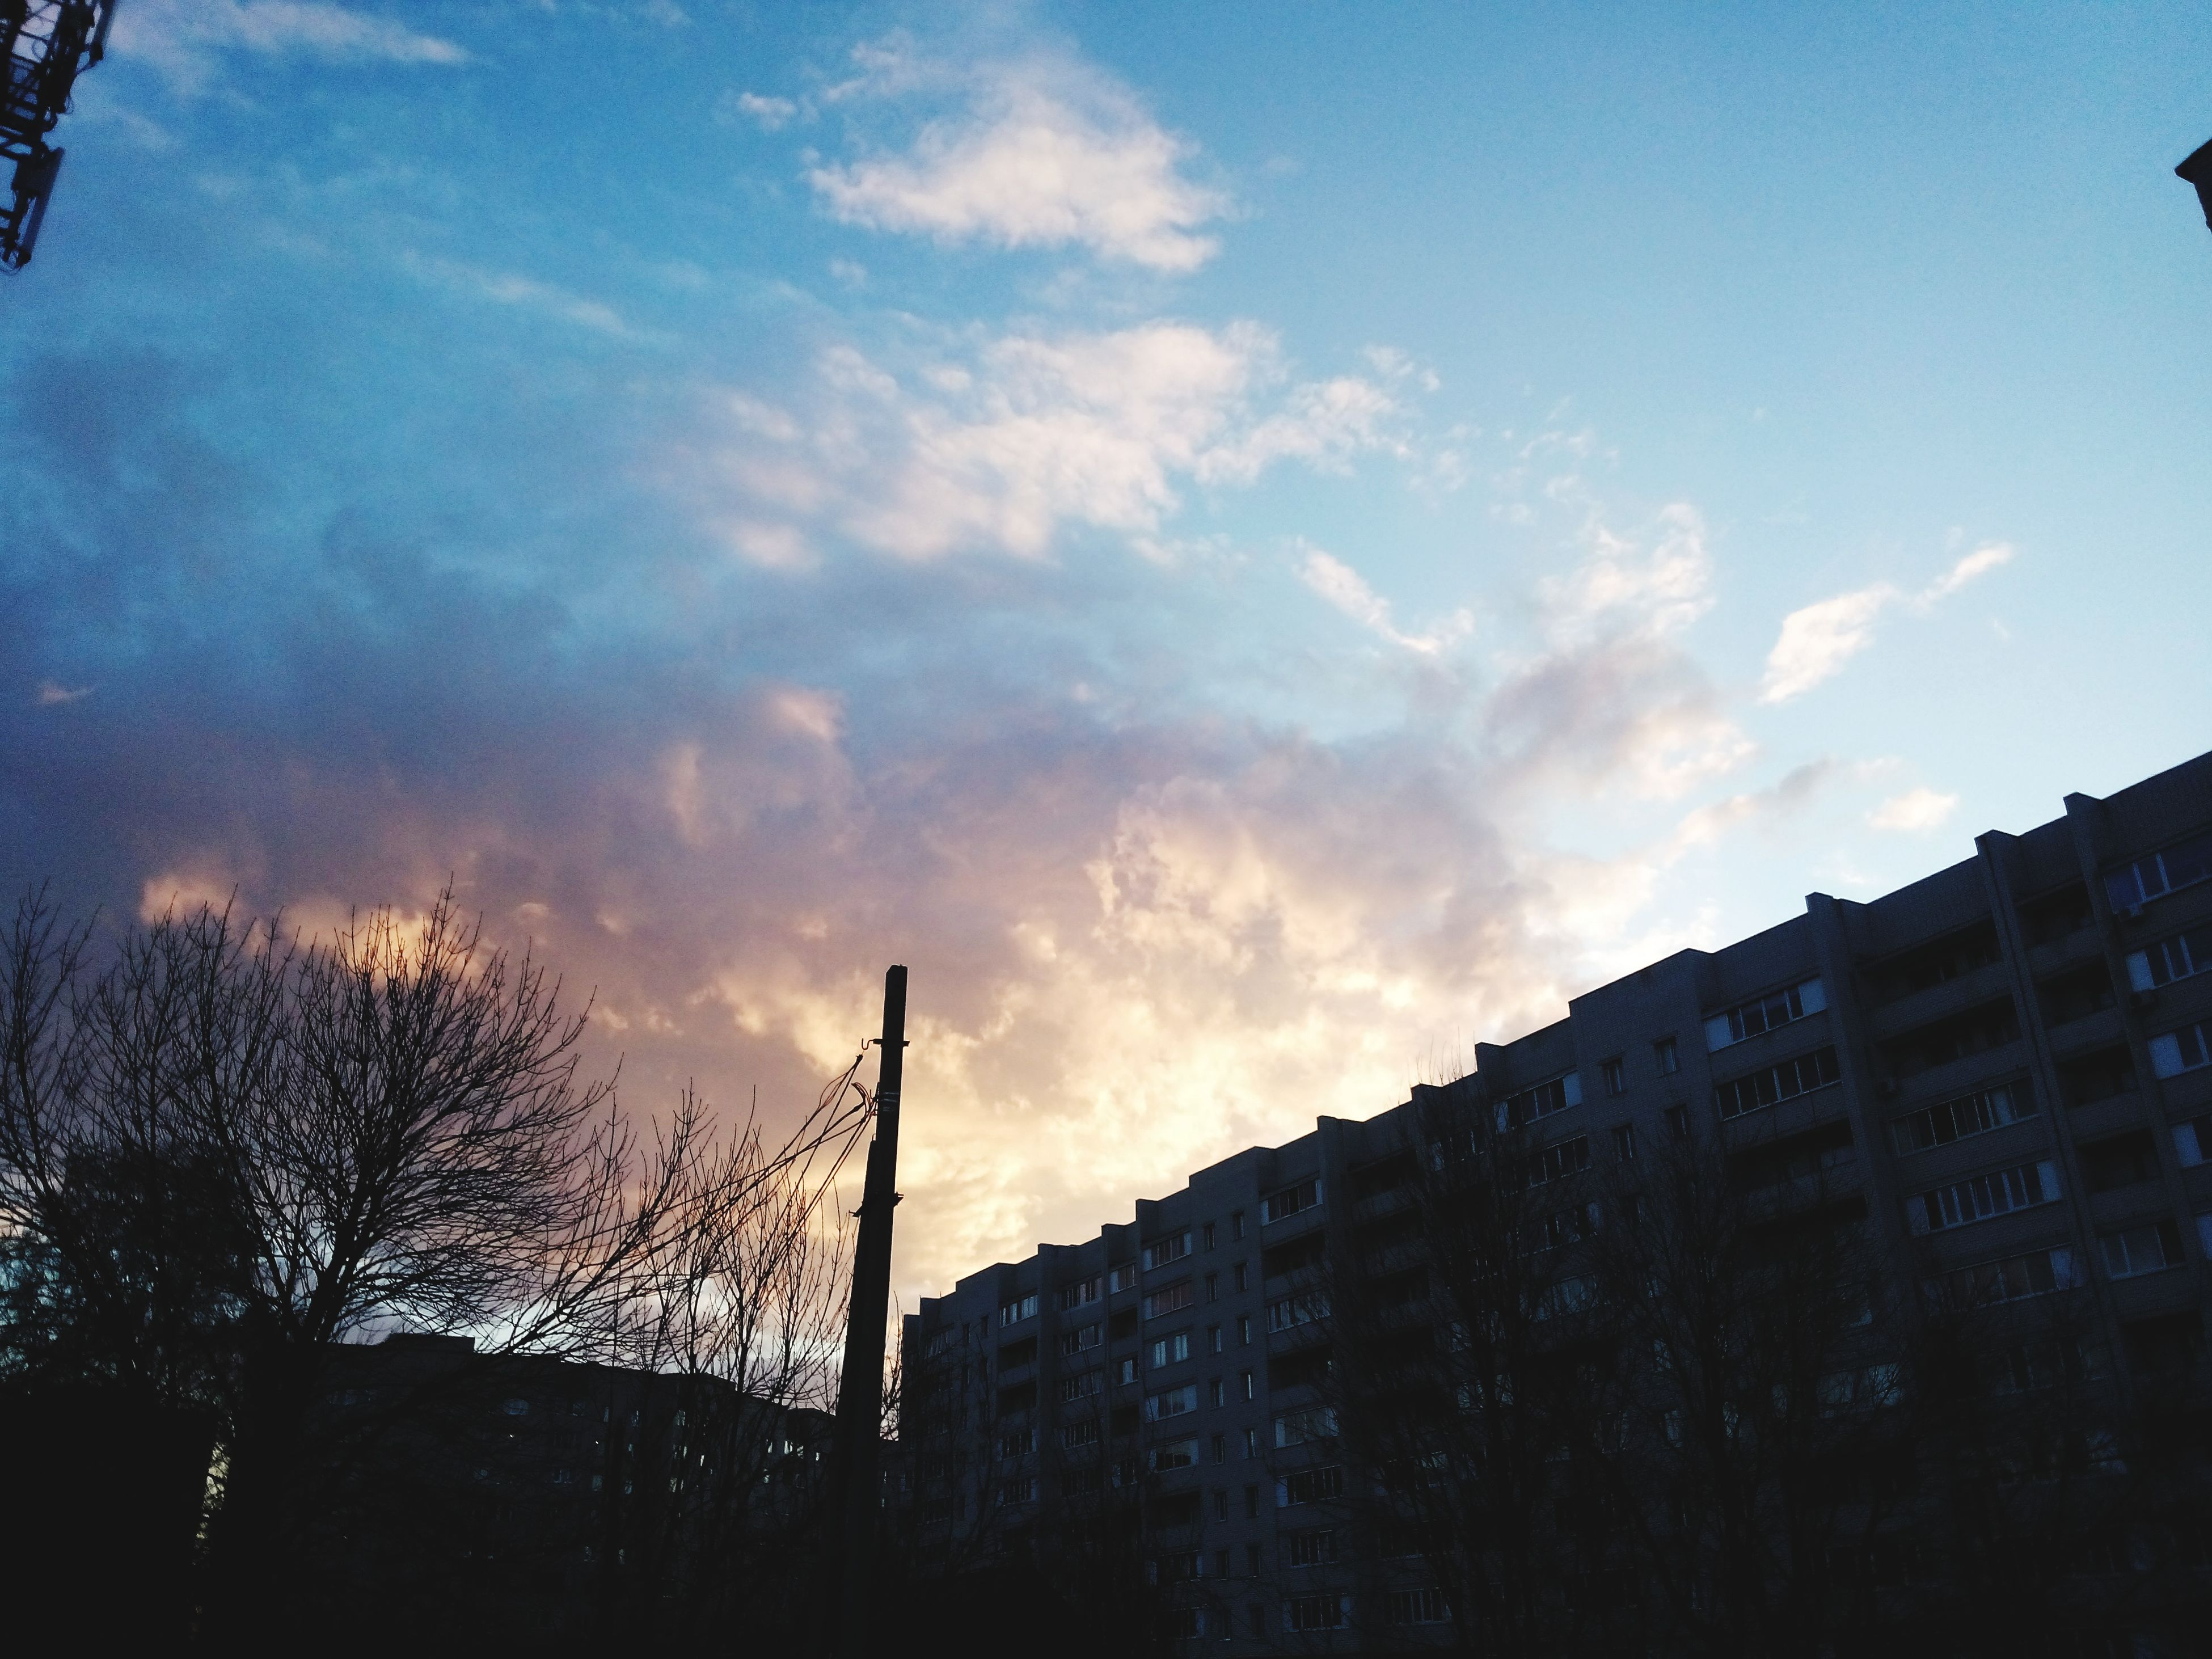 building exterior, architecture, built structure, low angle view, sky, cloud - sky, city, silhouette, building, tower, cloud, tree, tall - high, cloudy, sunset, outdoors, dusk, no people, skyscraper, residential building